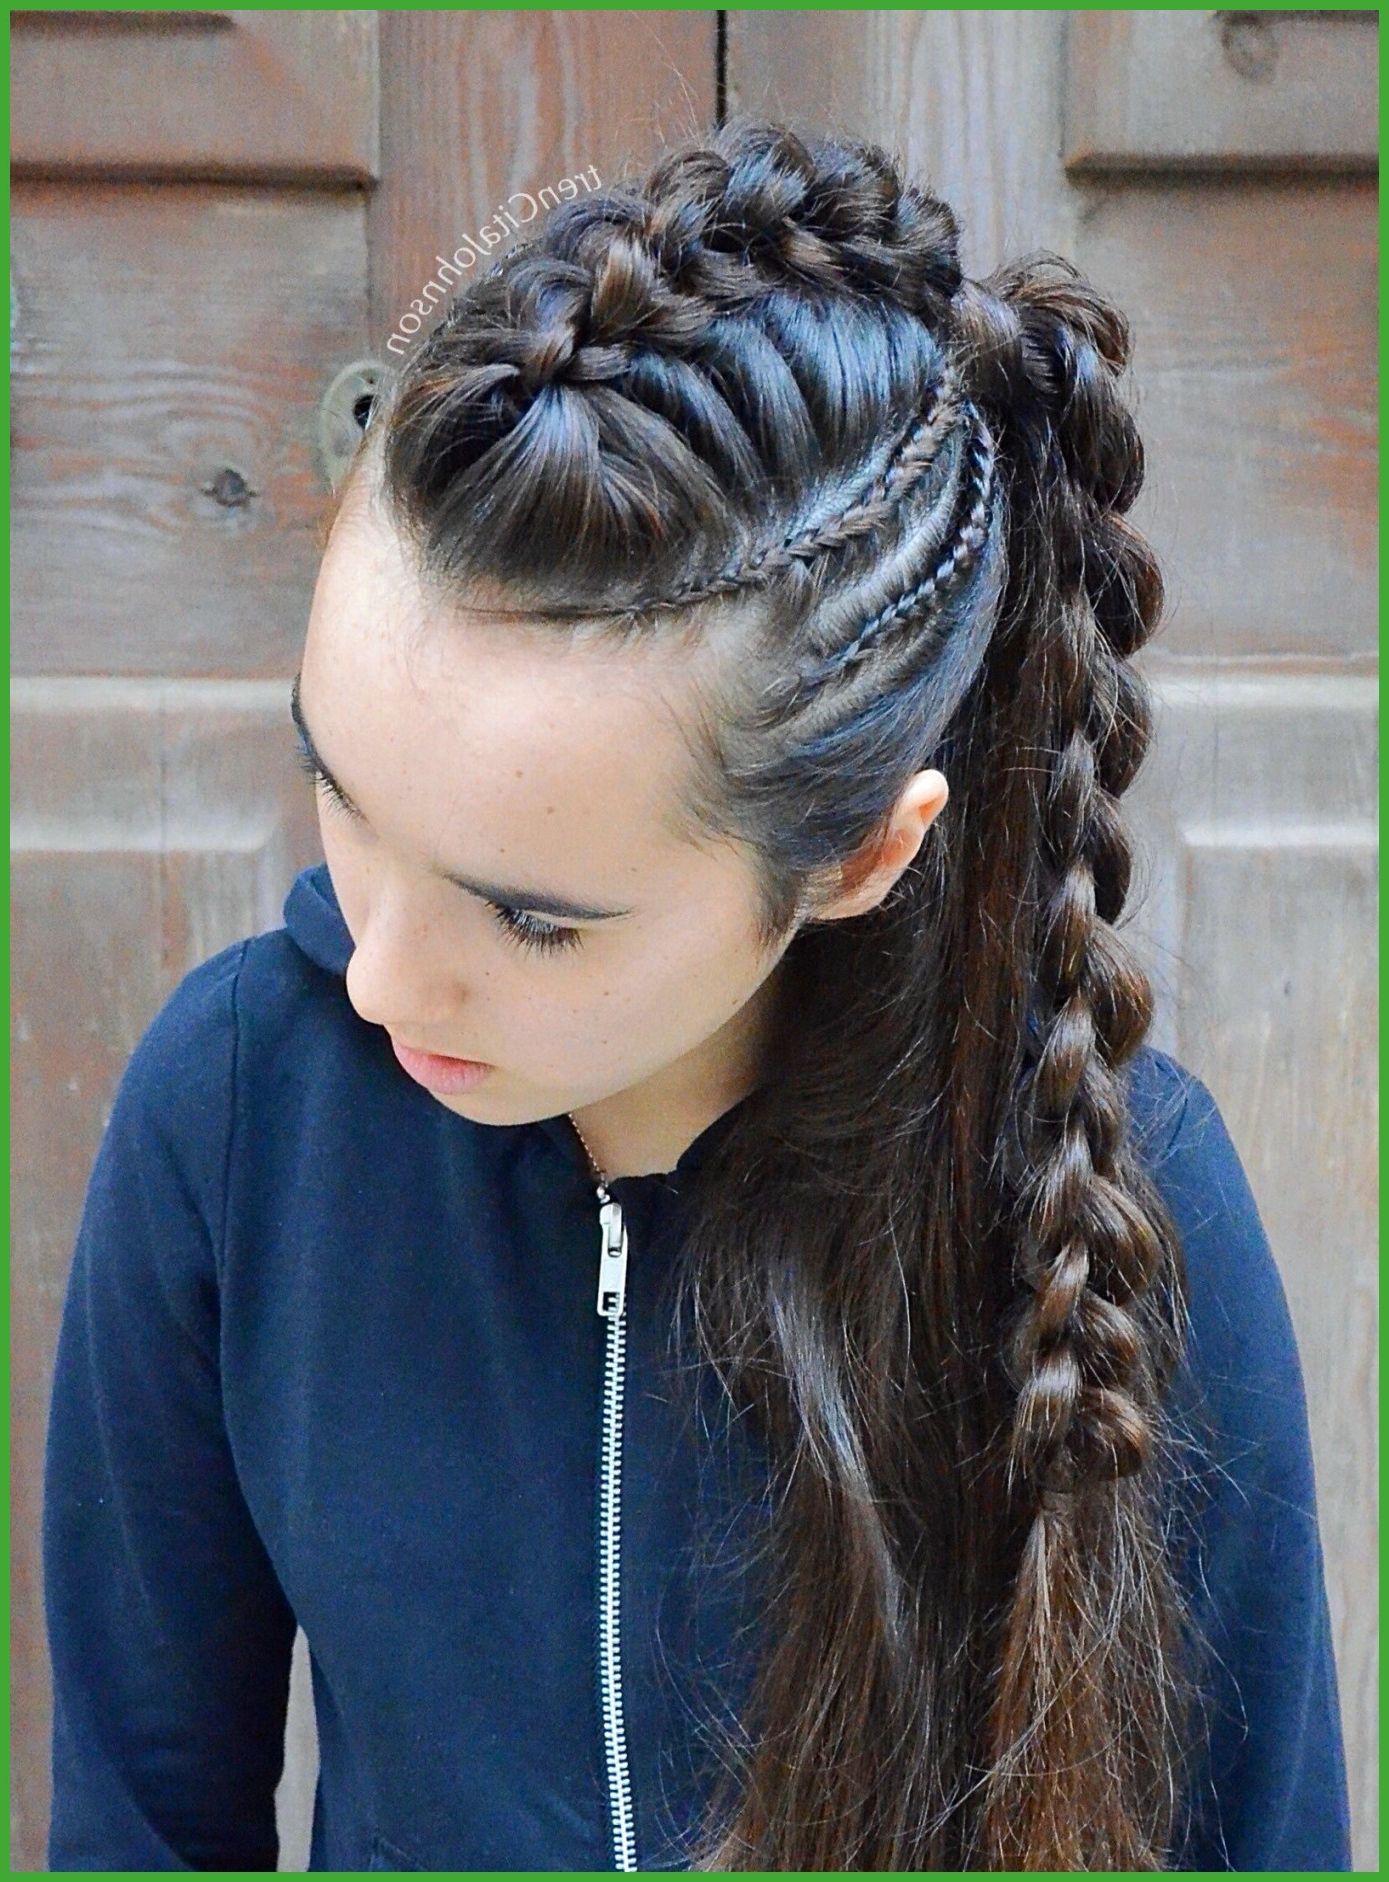 Fashionable French Braids Pony Hairstyles Within French Braid Styles Ponytail With 3D Round Braid Hairstyles (View 8 of 20)